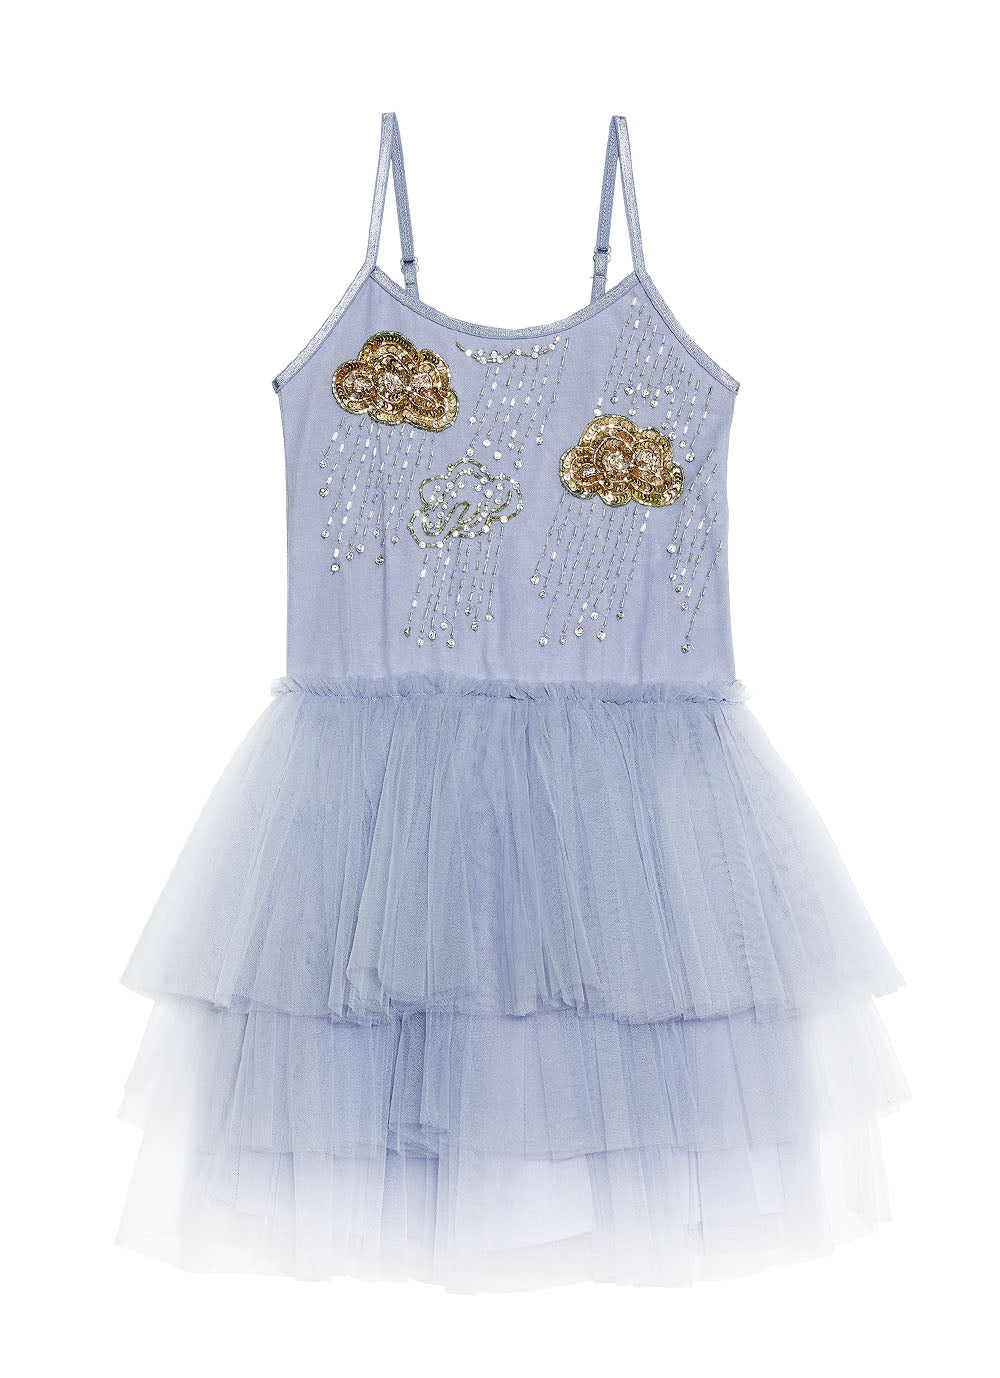 GOLDEN CLOUD TUTU DRESS - BLUEMOON